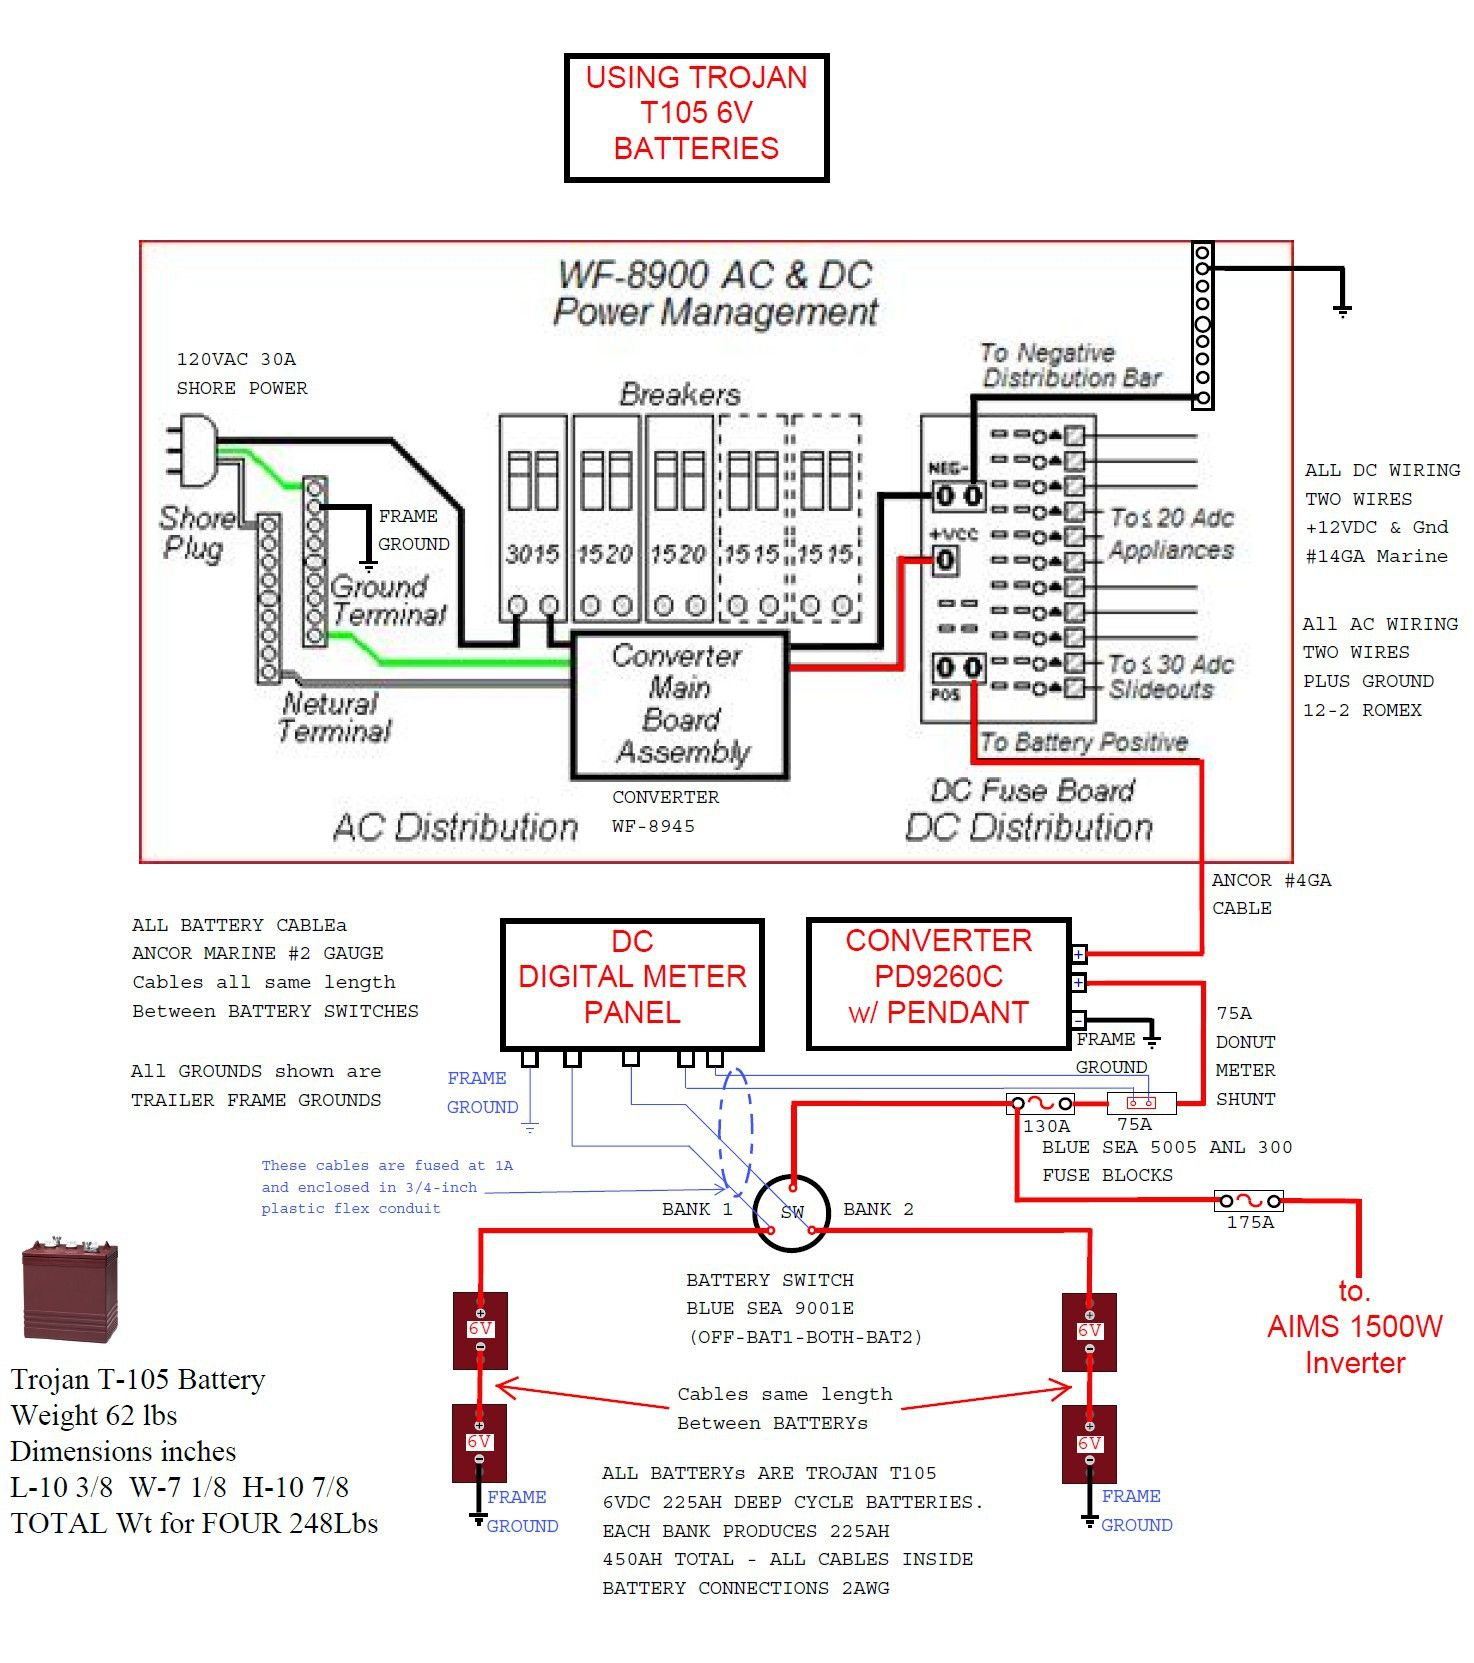 Wiring Diagram For 30 Amp Rv Plug from i.pinimg.com